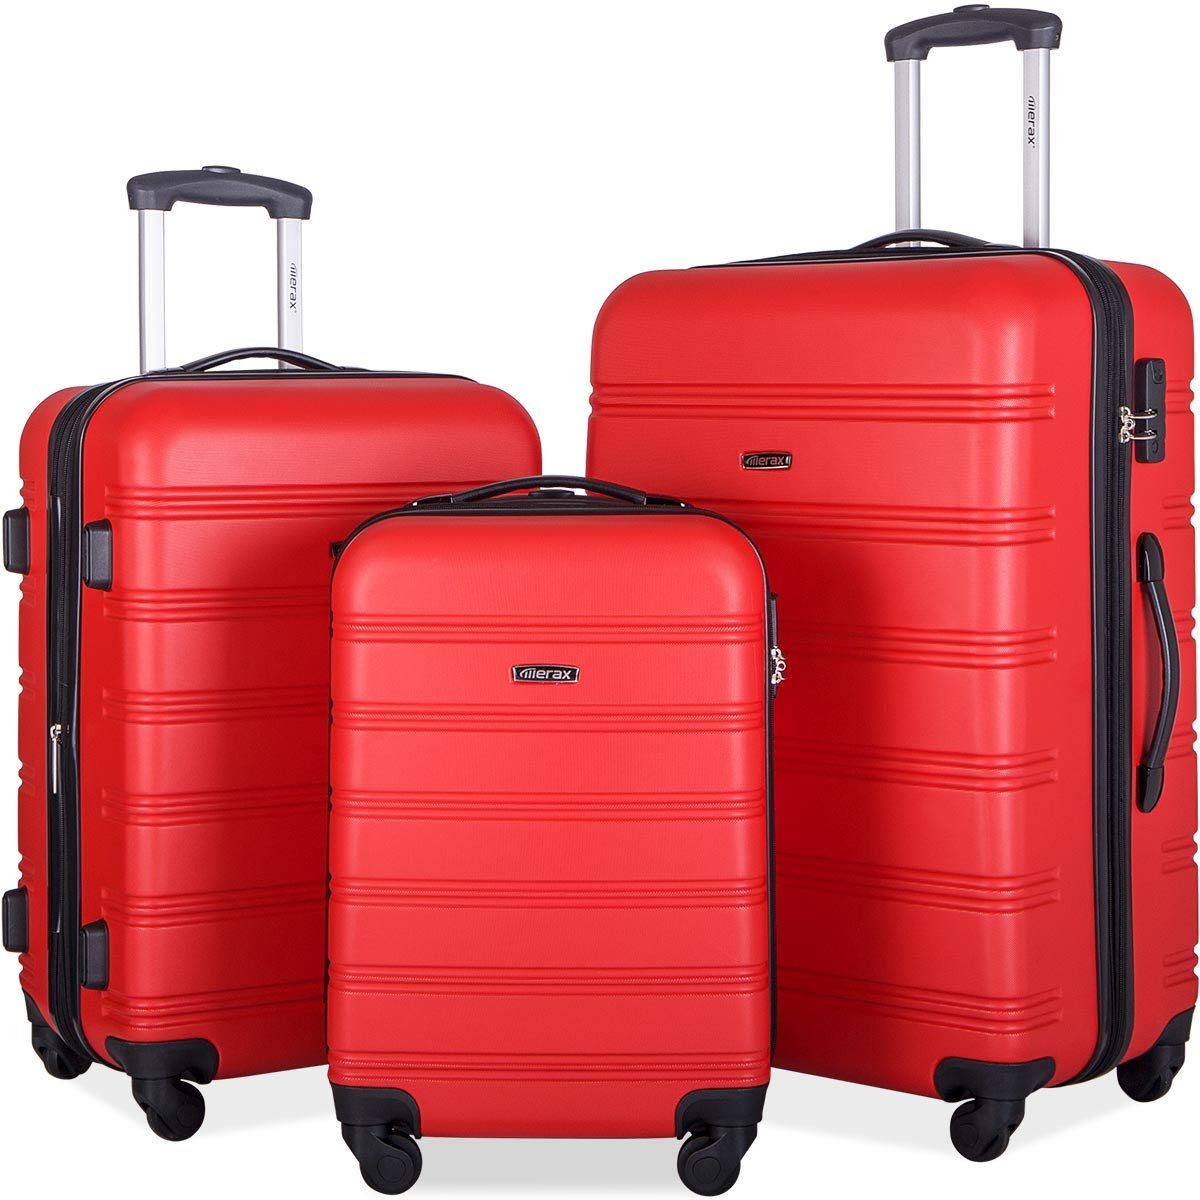 Merax Mellowdy 3 Piece Set Spinner Luggage Expandable Travel Suitcase 20 24 28 inch (Skyblue)